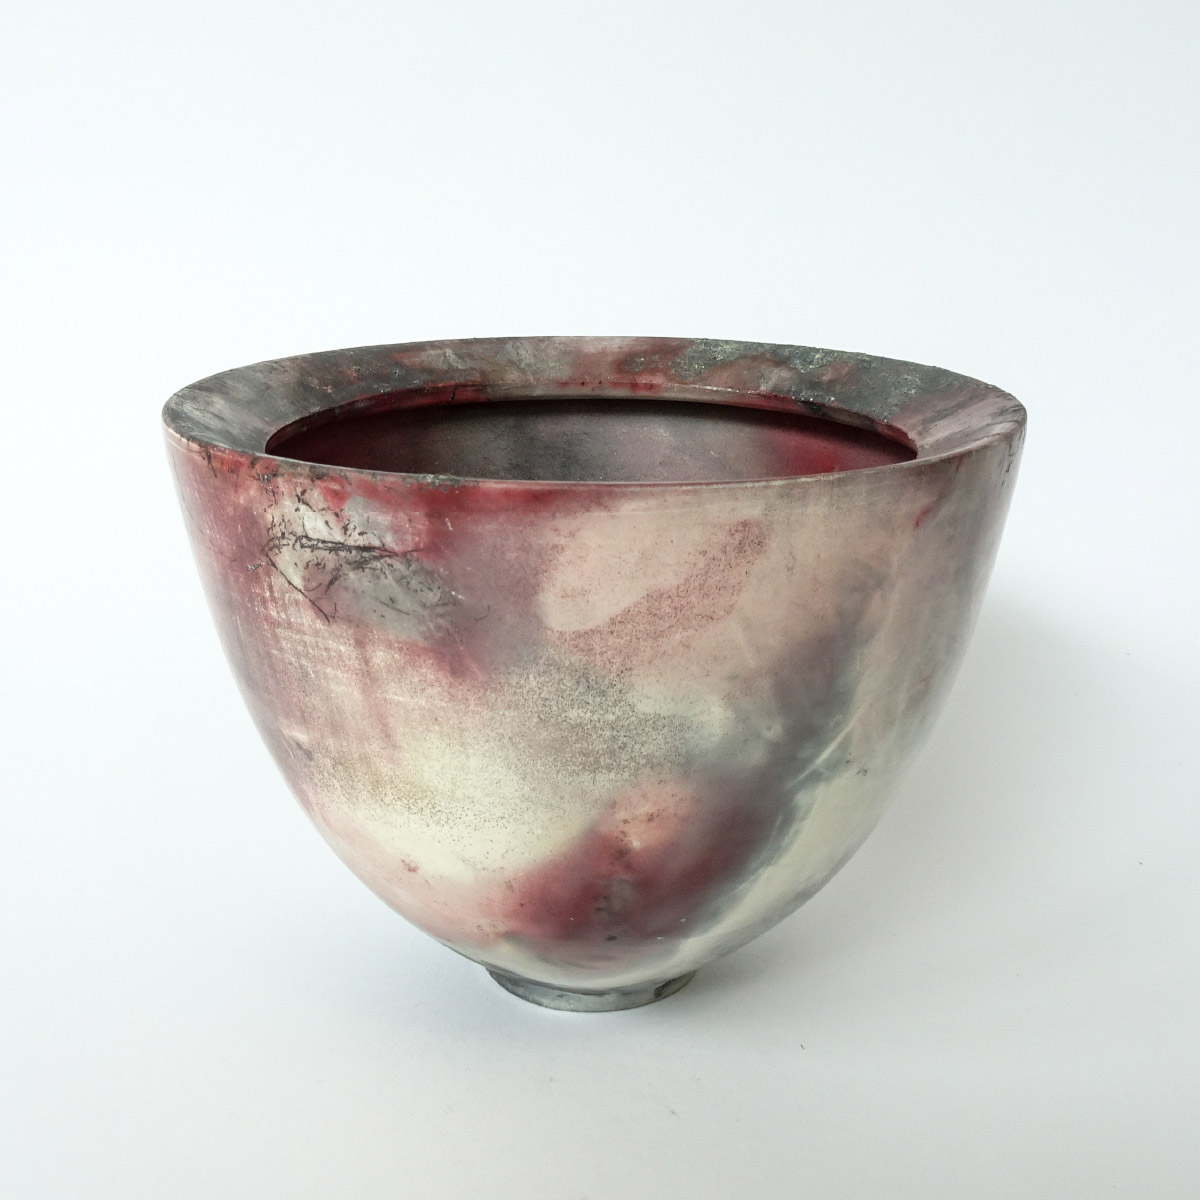 Elena Arosio Vessel Wheelthrown stoneware porcelain smoke and pit fired